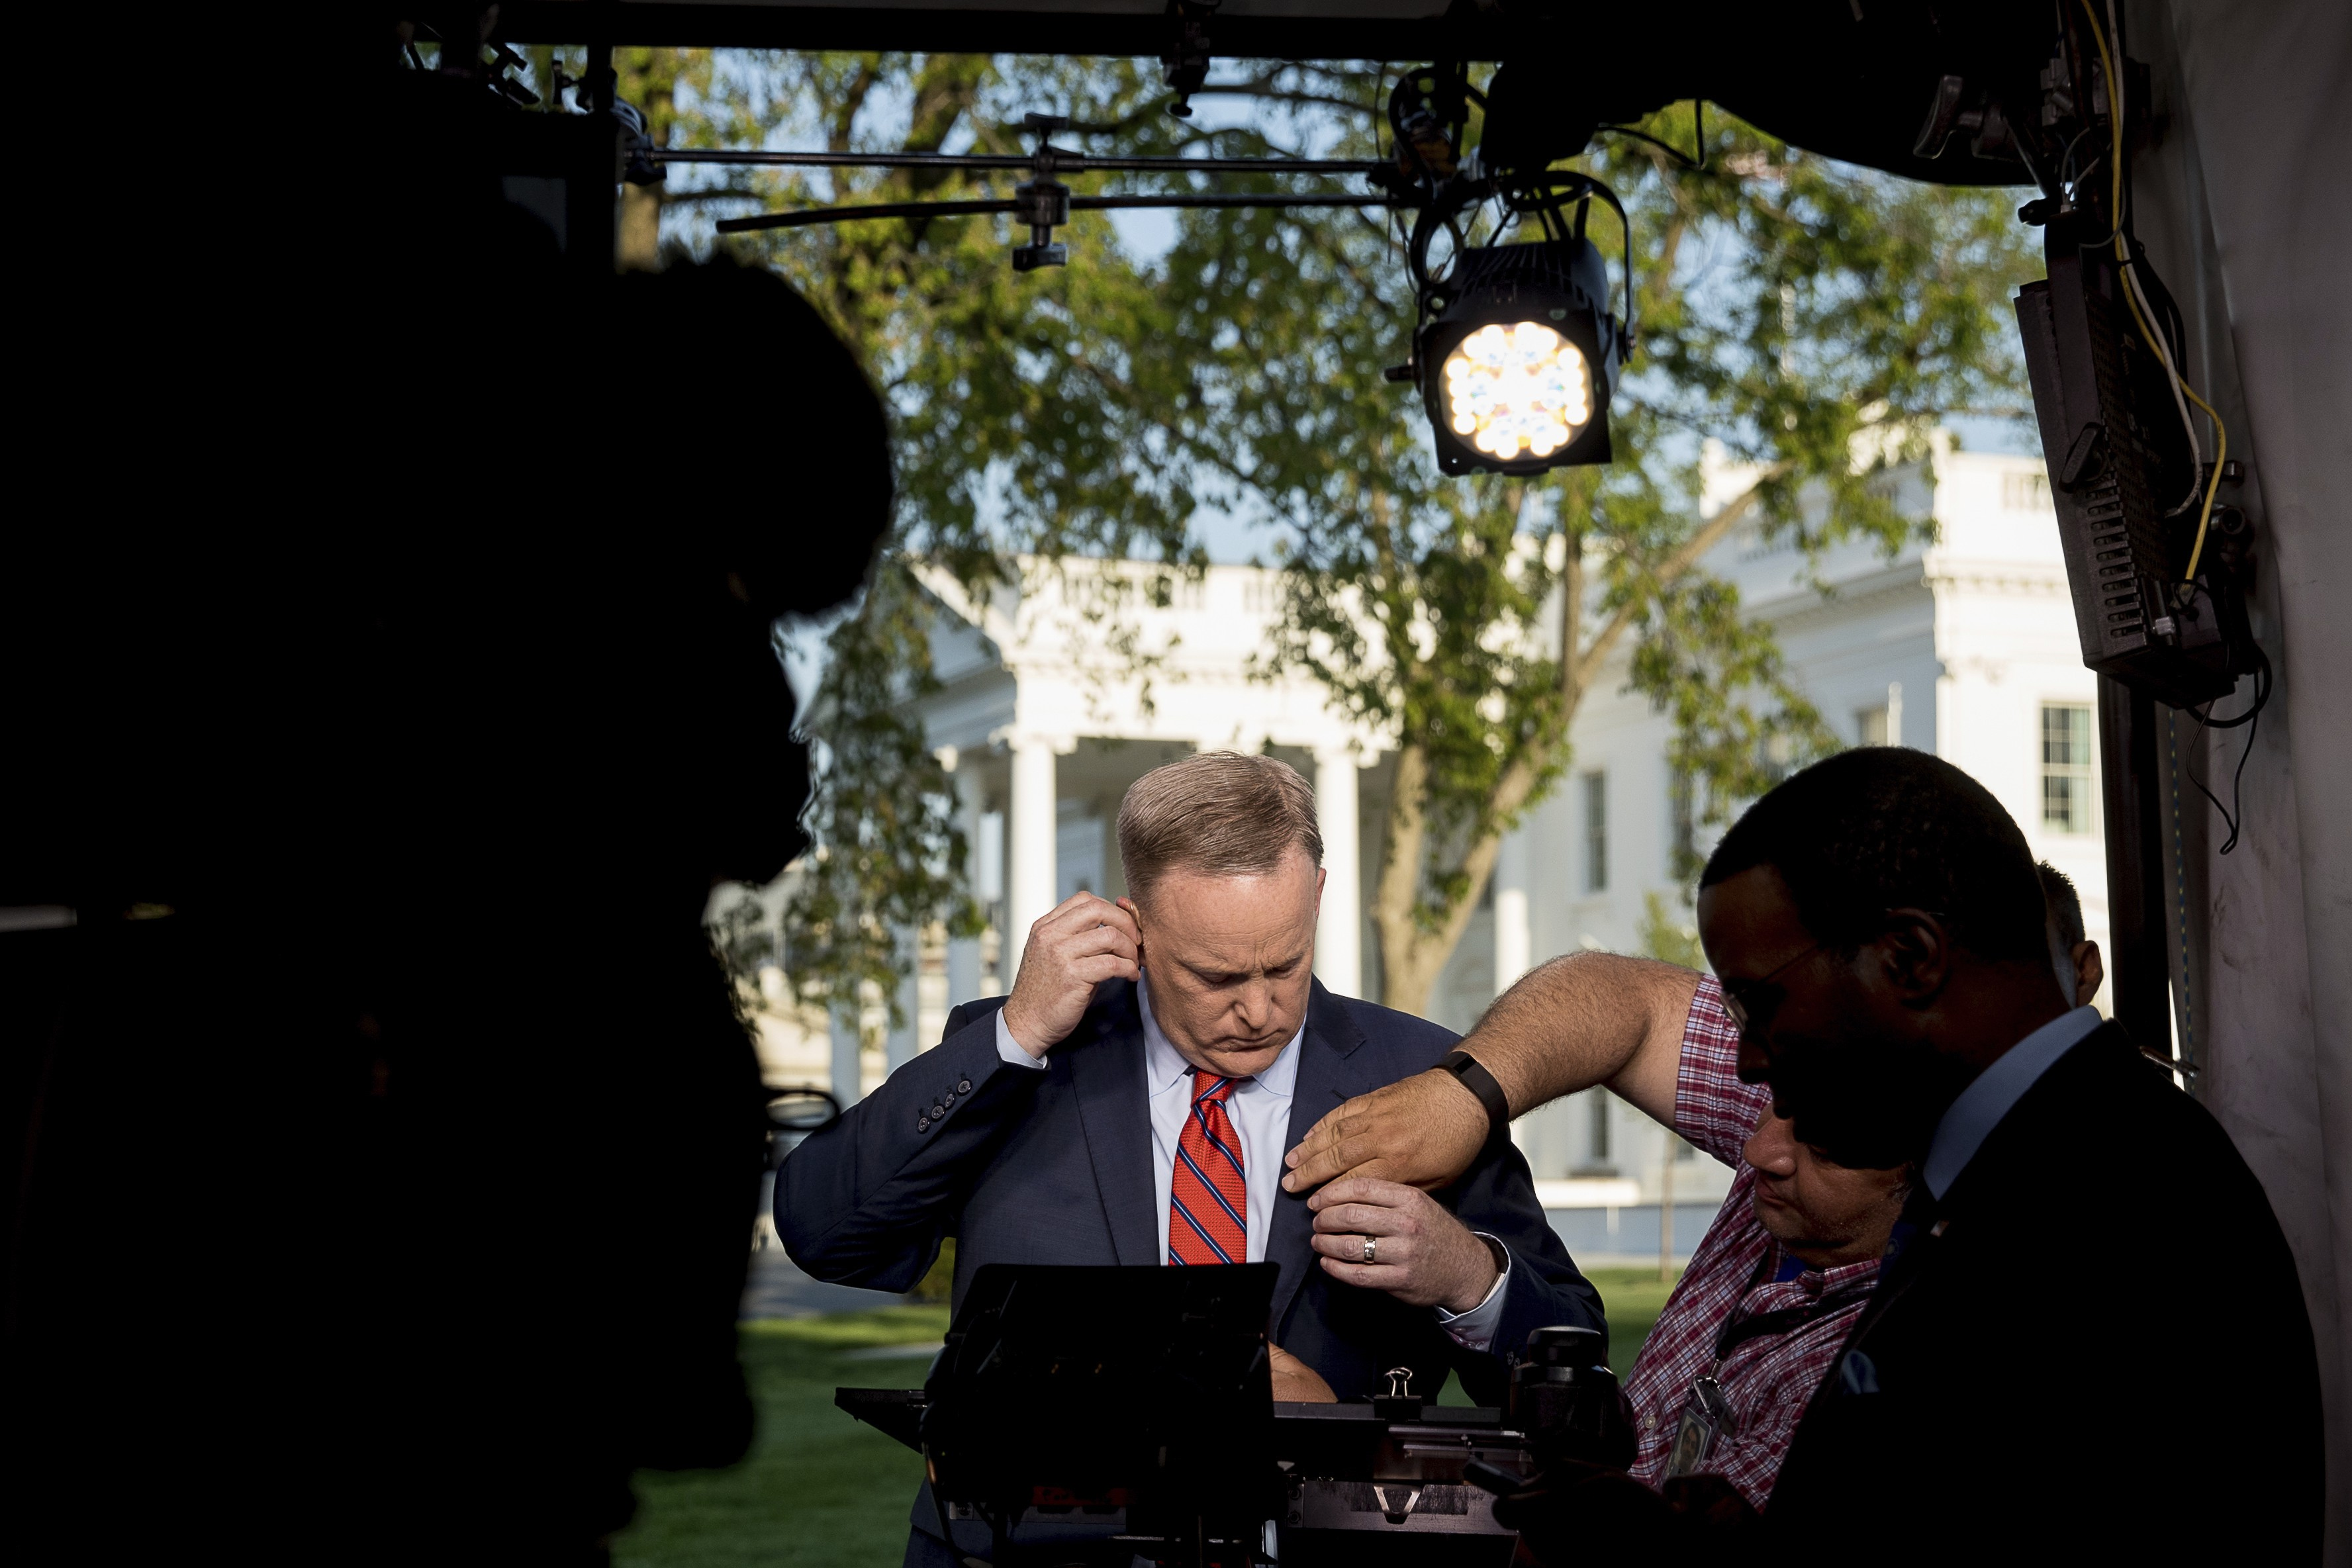 White House press secretary Sean Spicer preparing to go on cable news